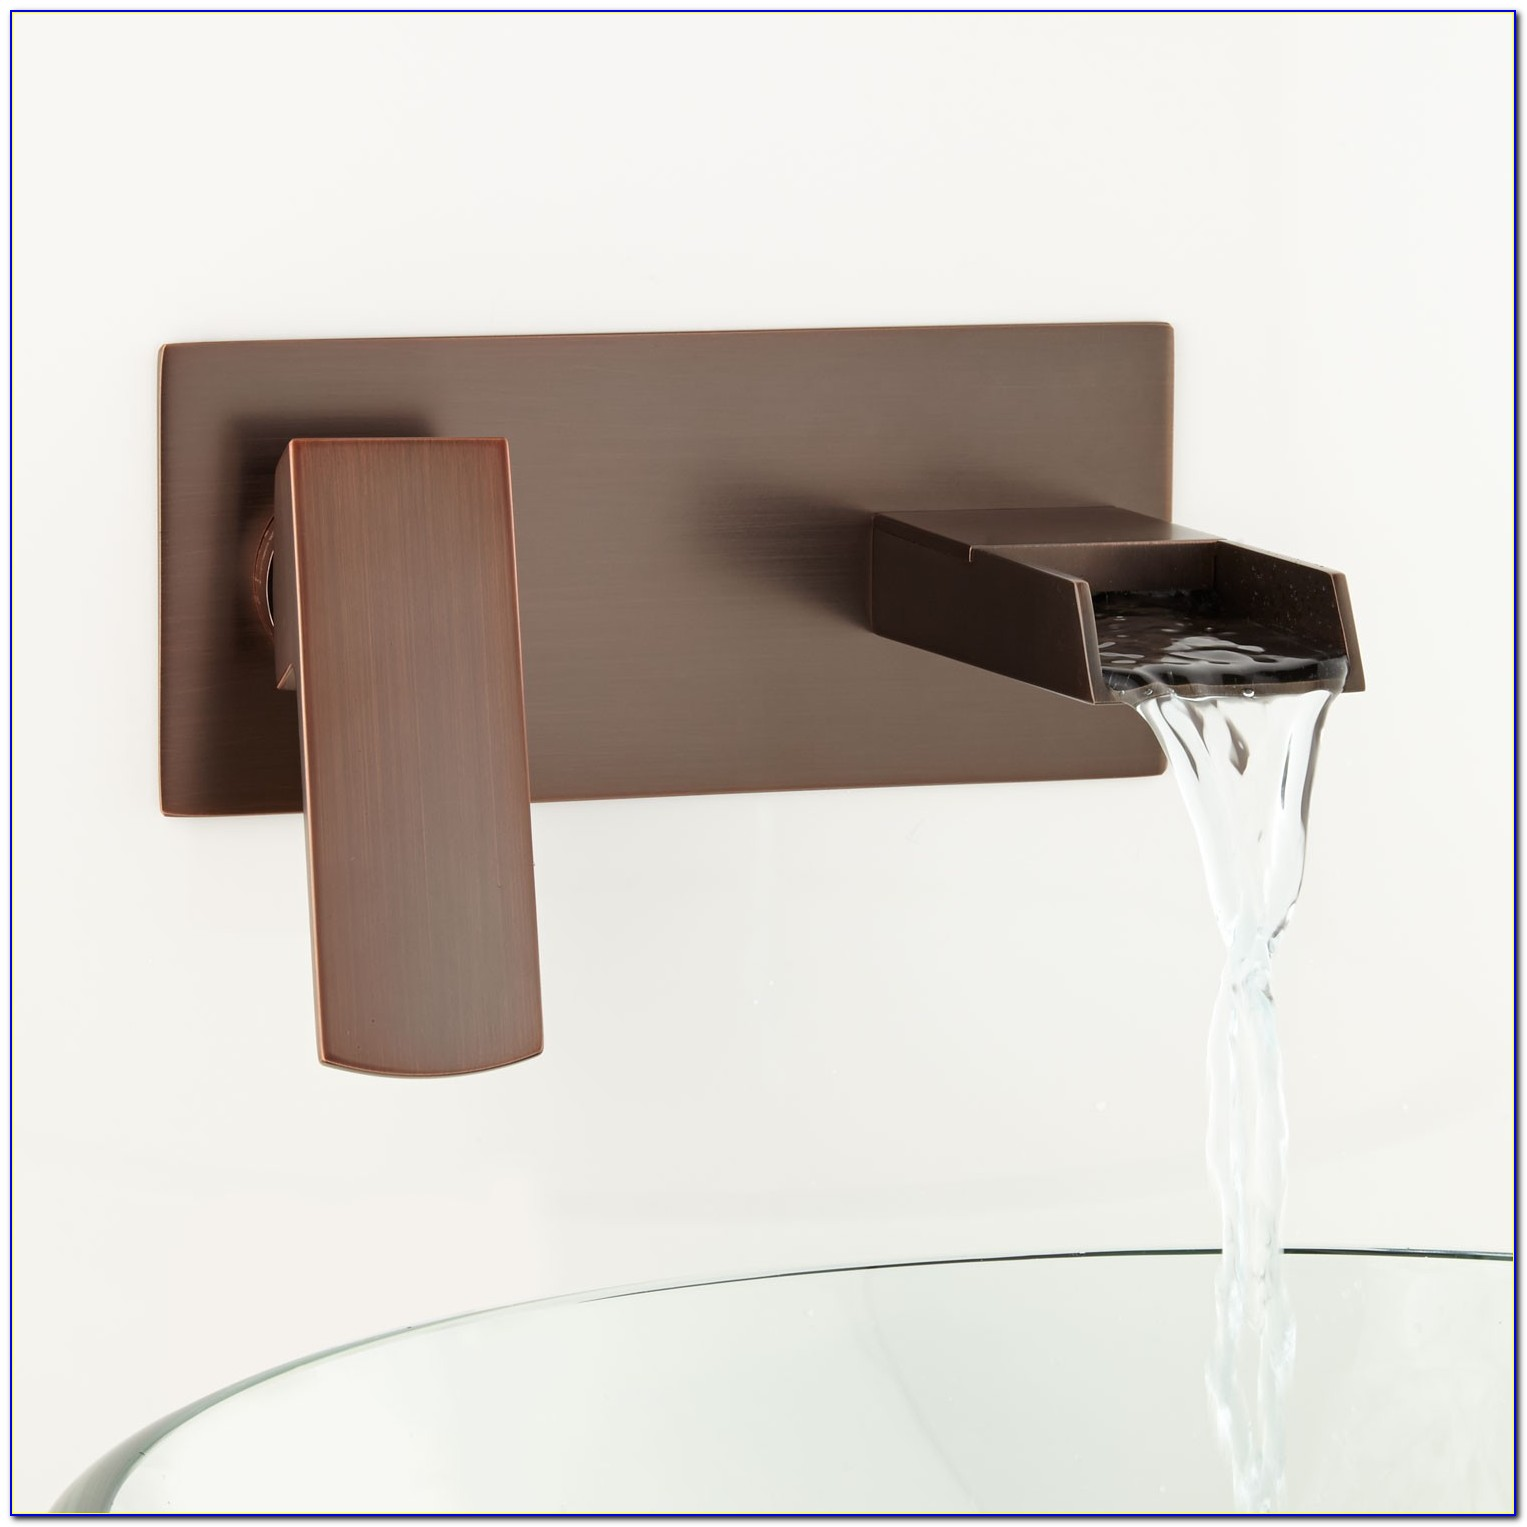 Wall Mount Sink Faucet Installation